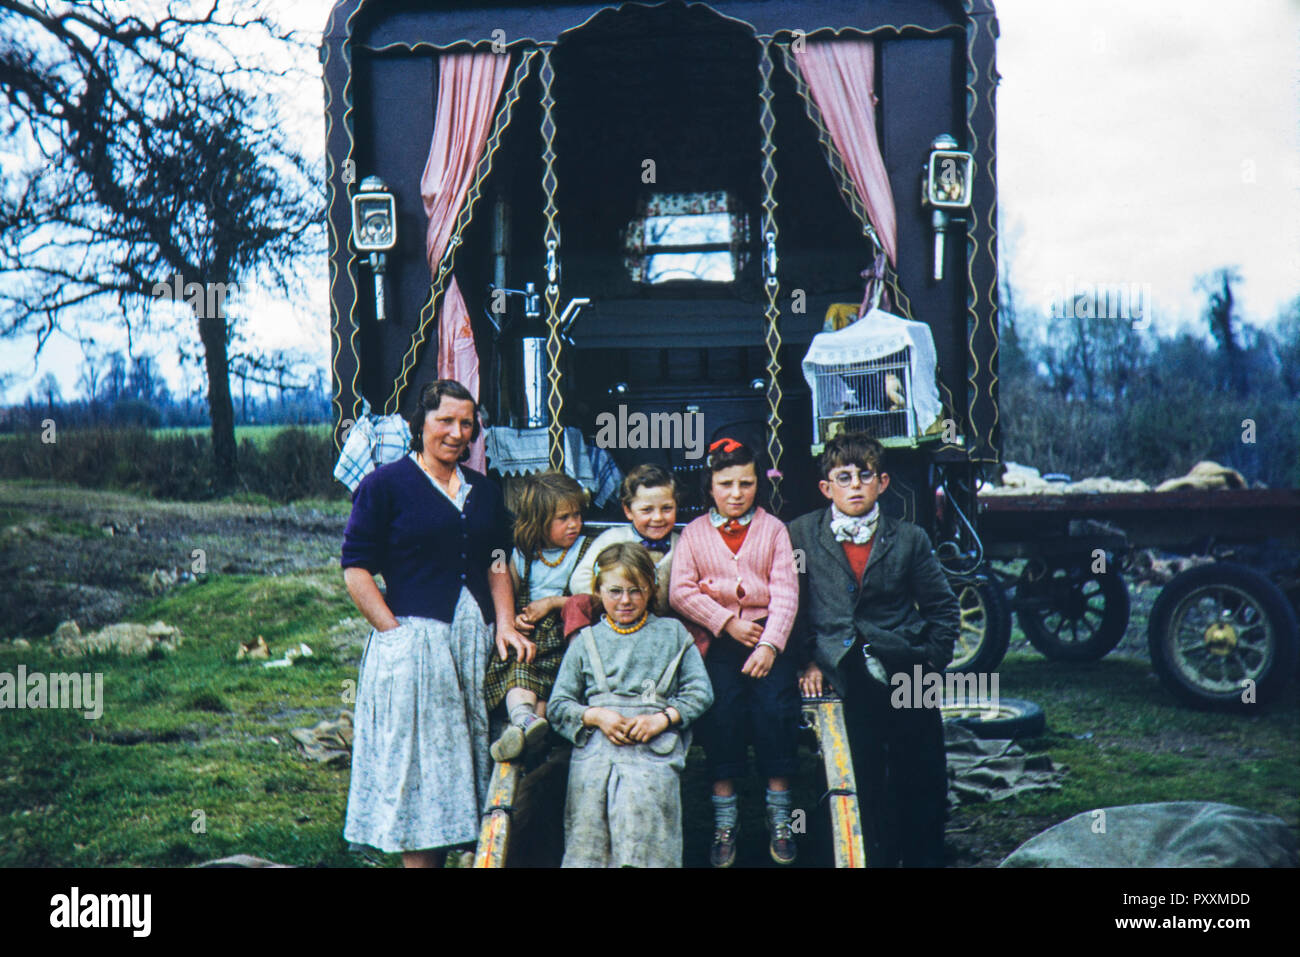 Image of a Romany gypsy family taken in the 1950s - Stock Image